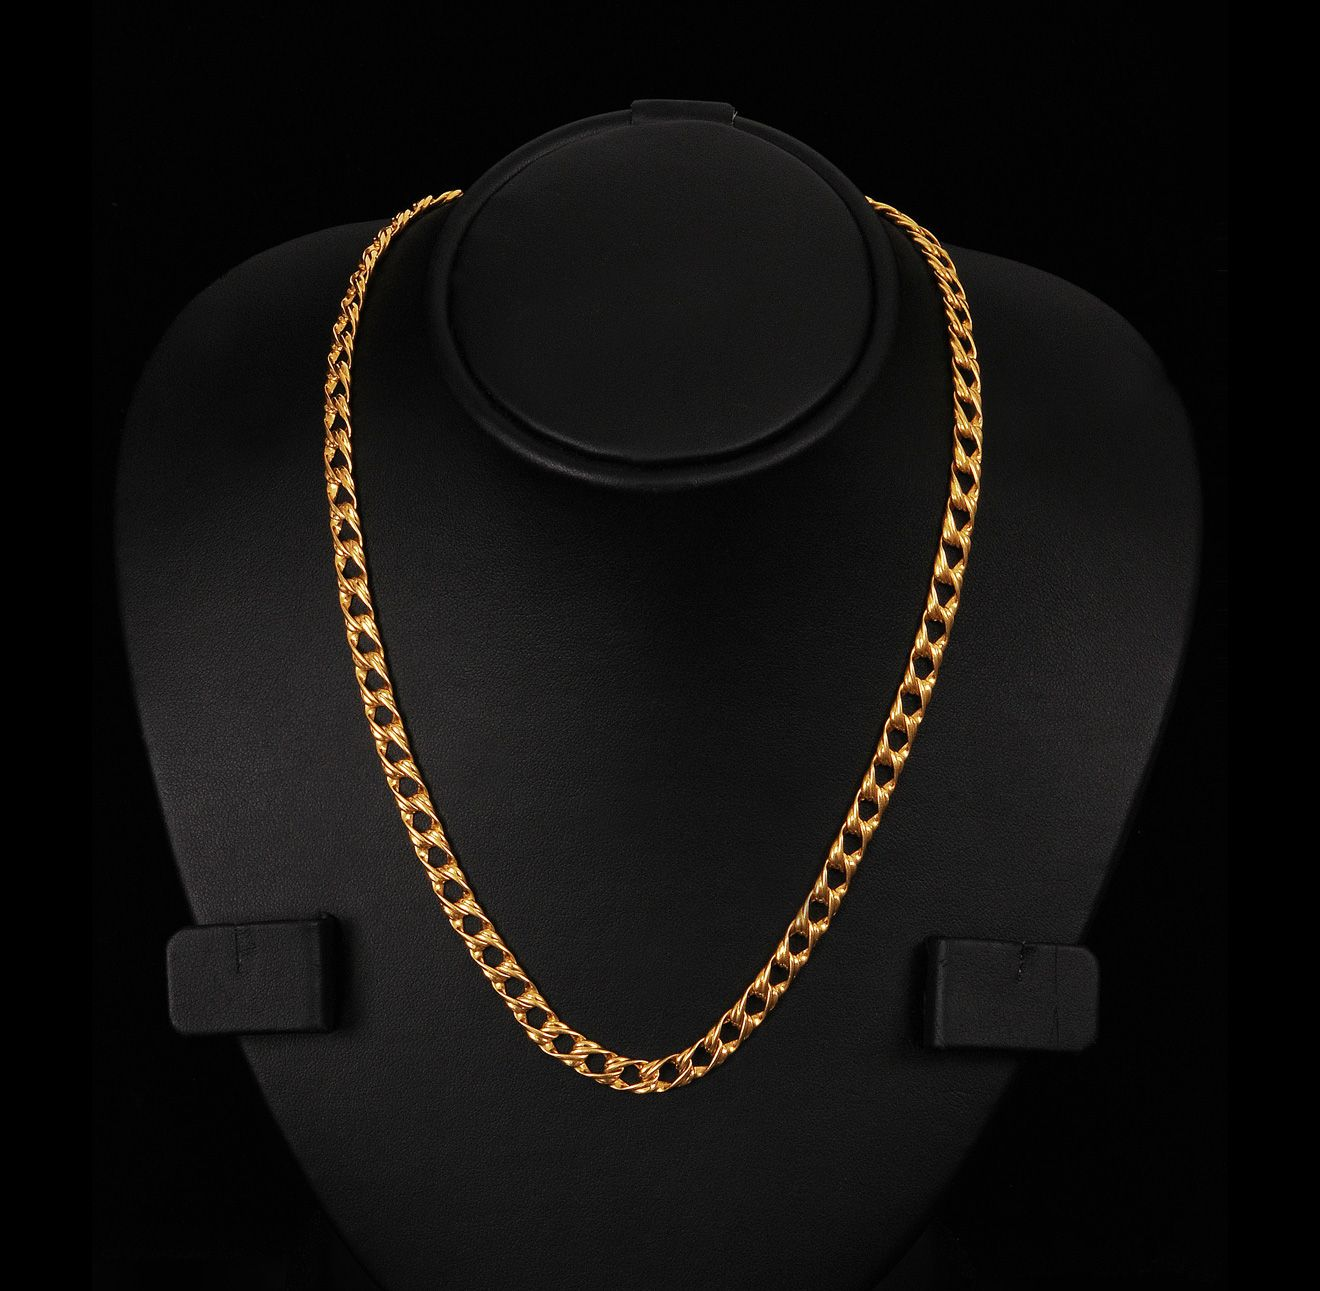 Pin by ujas patel on A.port | Pinterest | Gold chain design ...